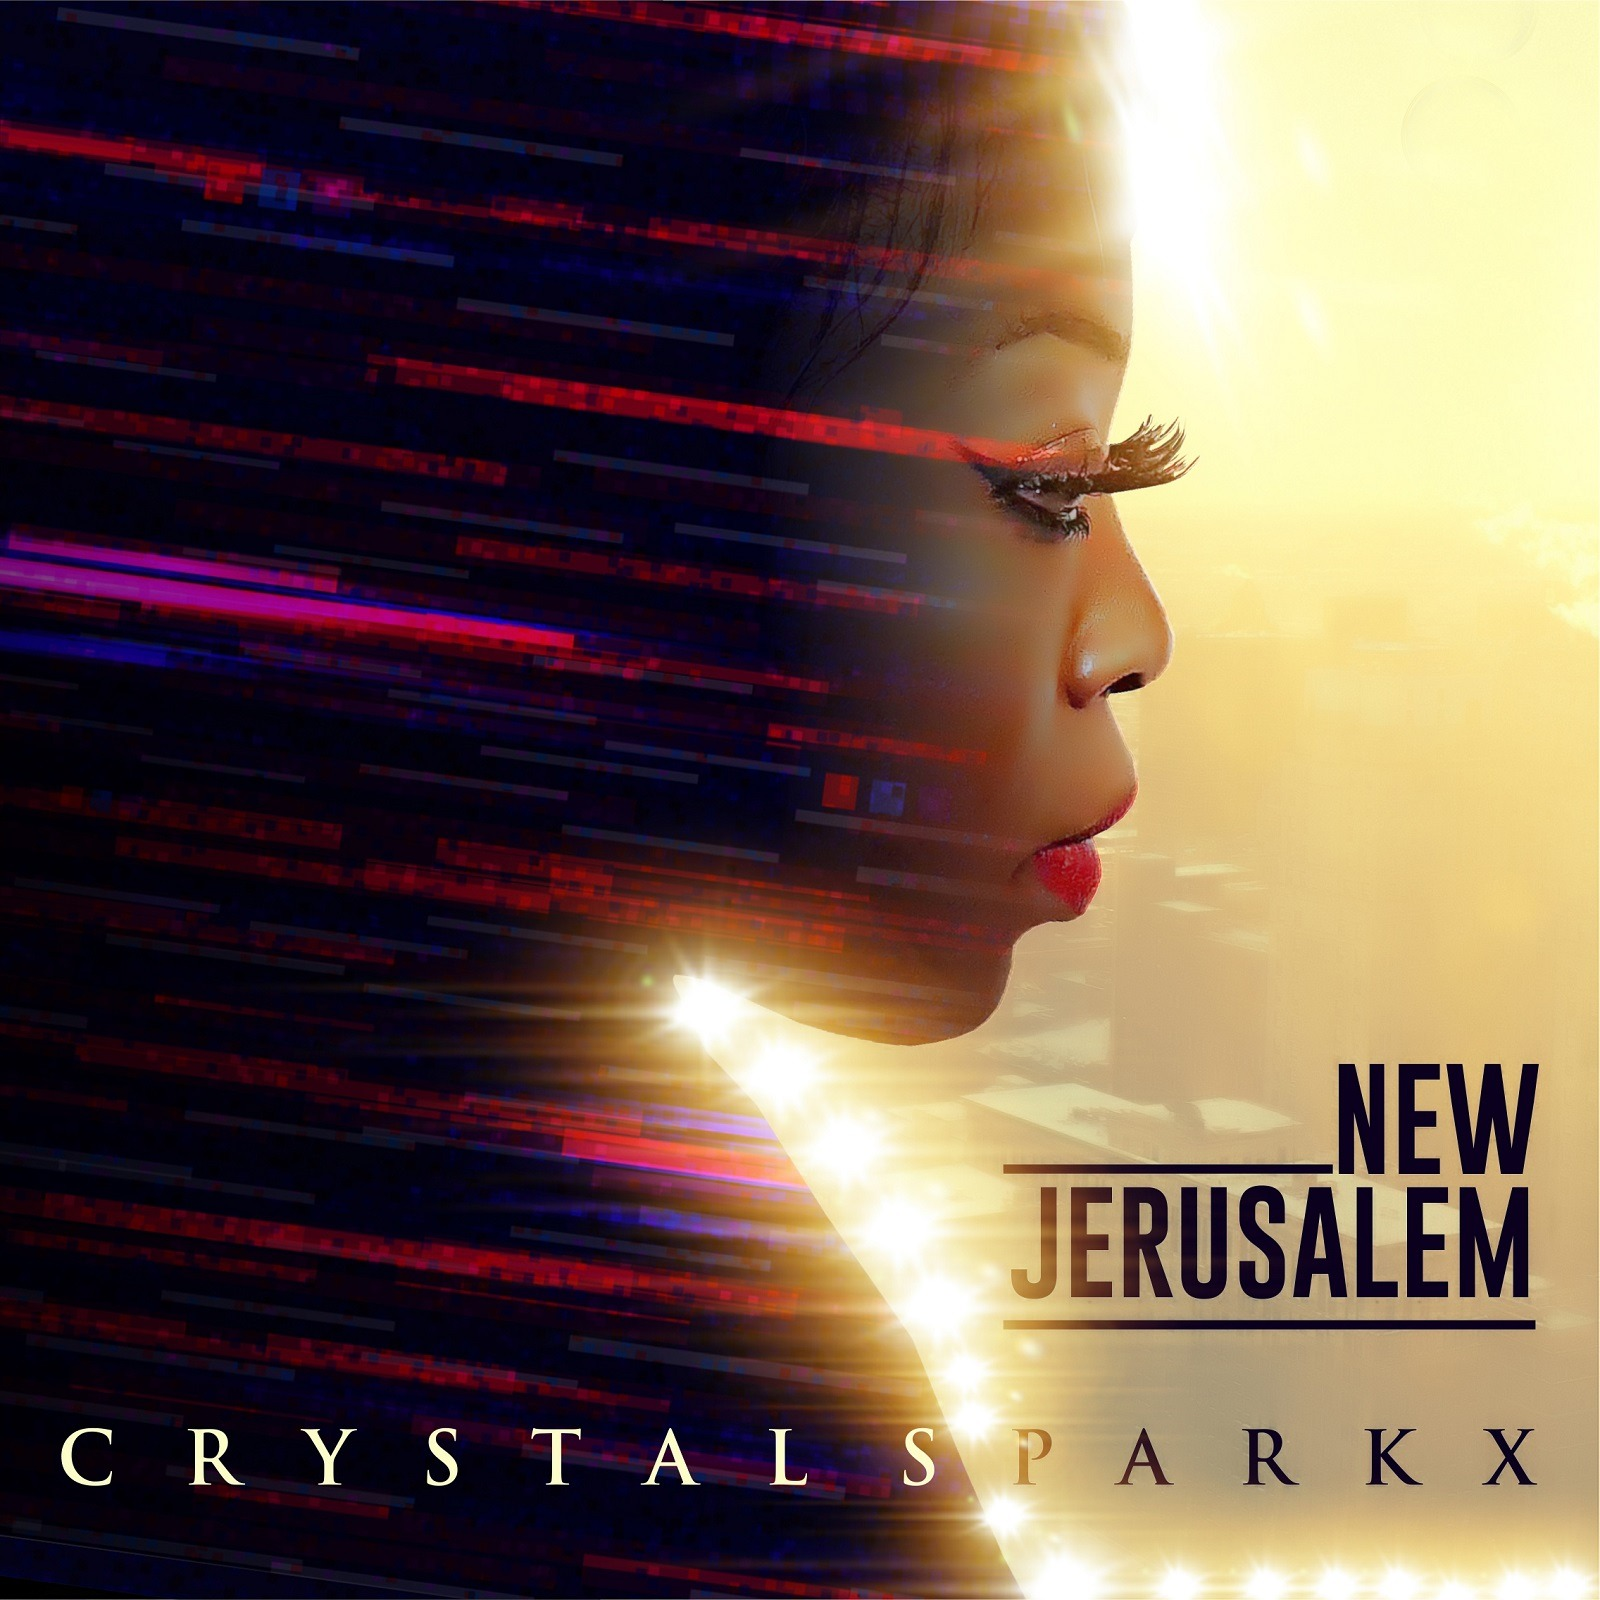 Crystal Sparkx – New Jerusalem